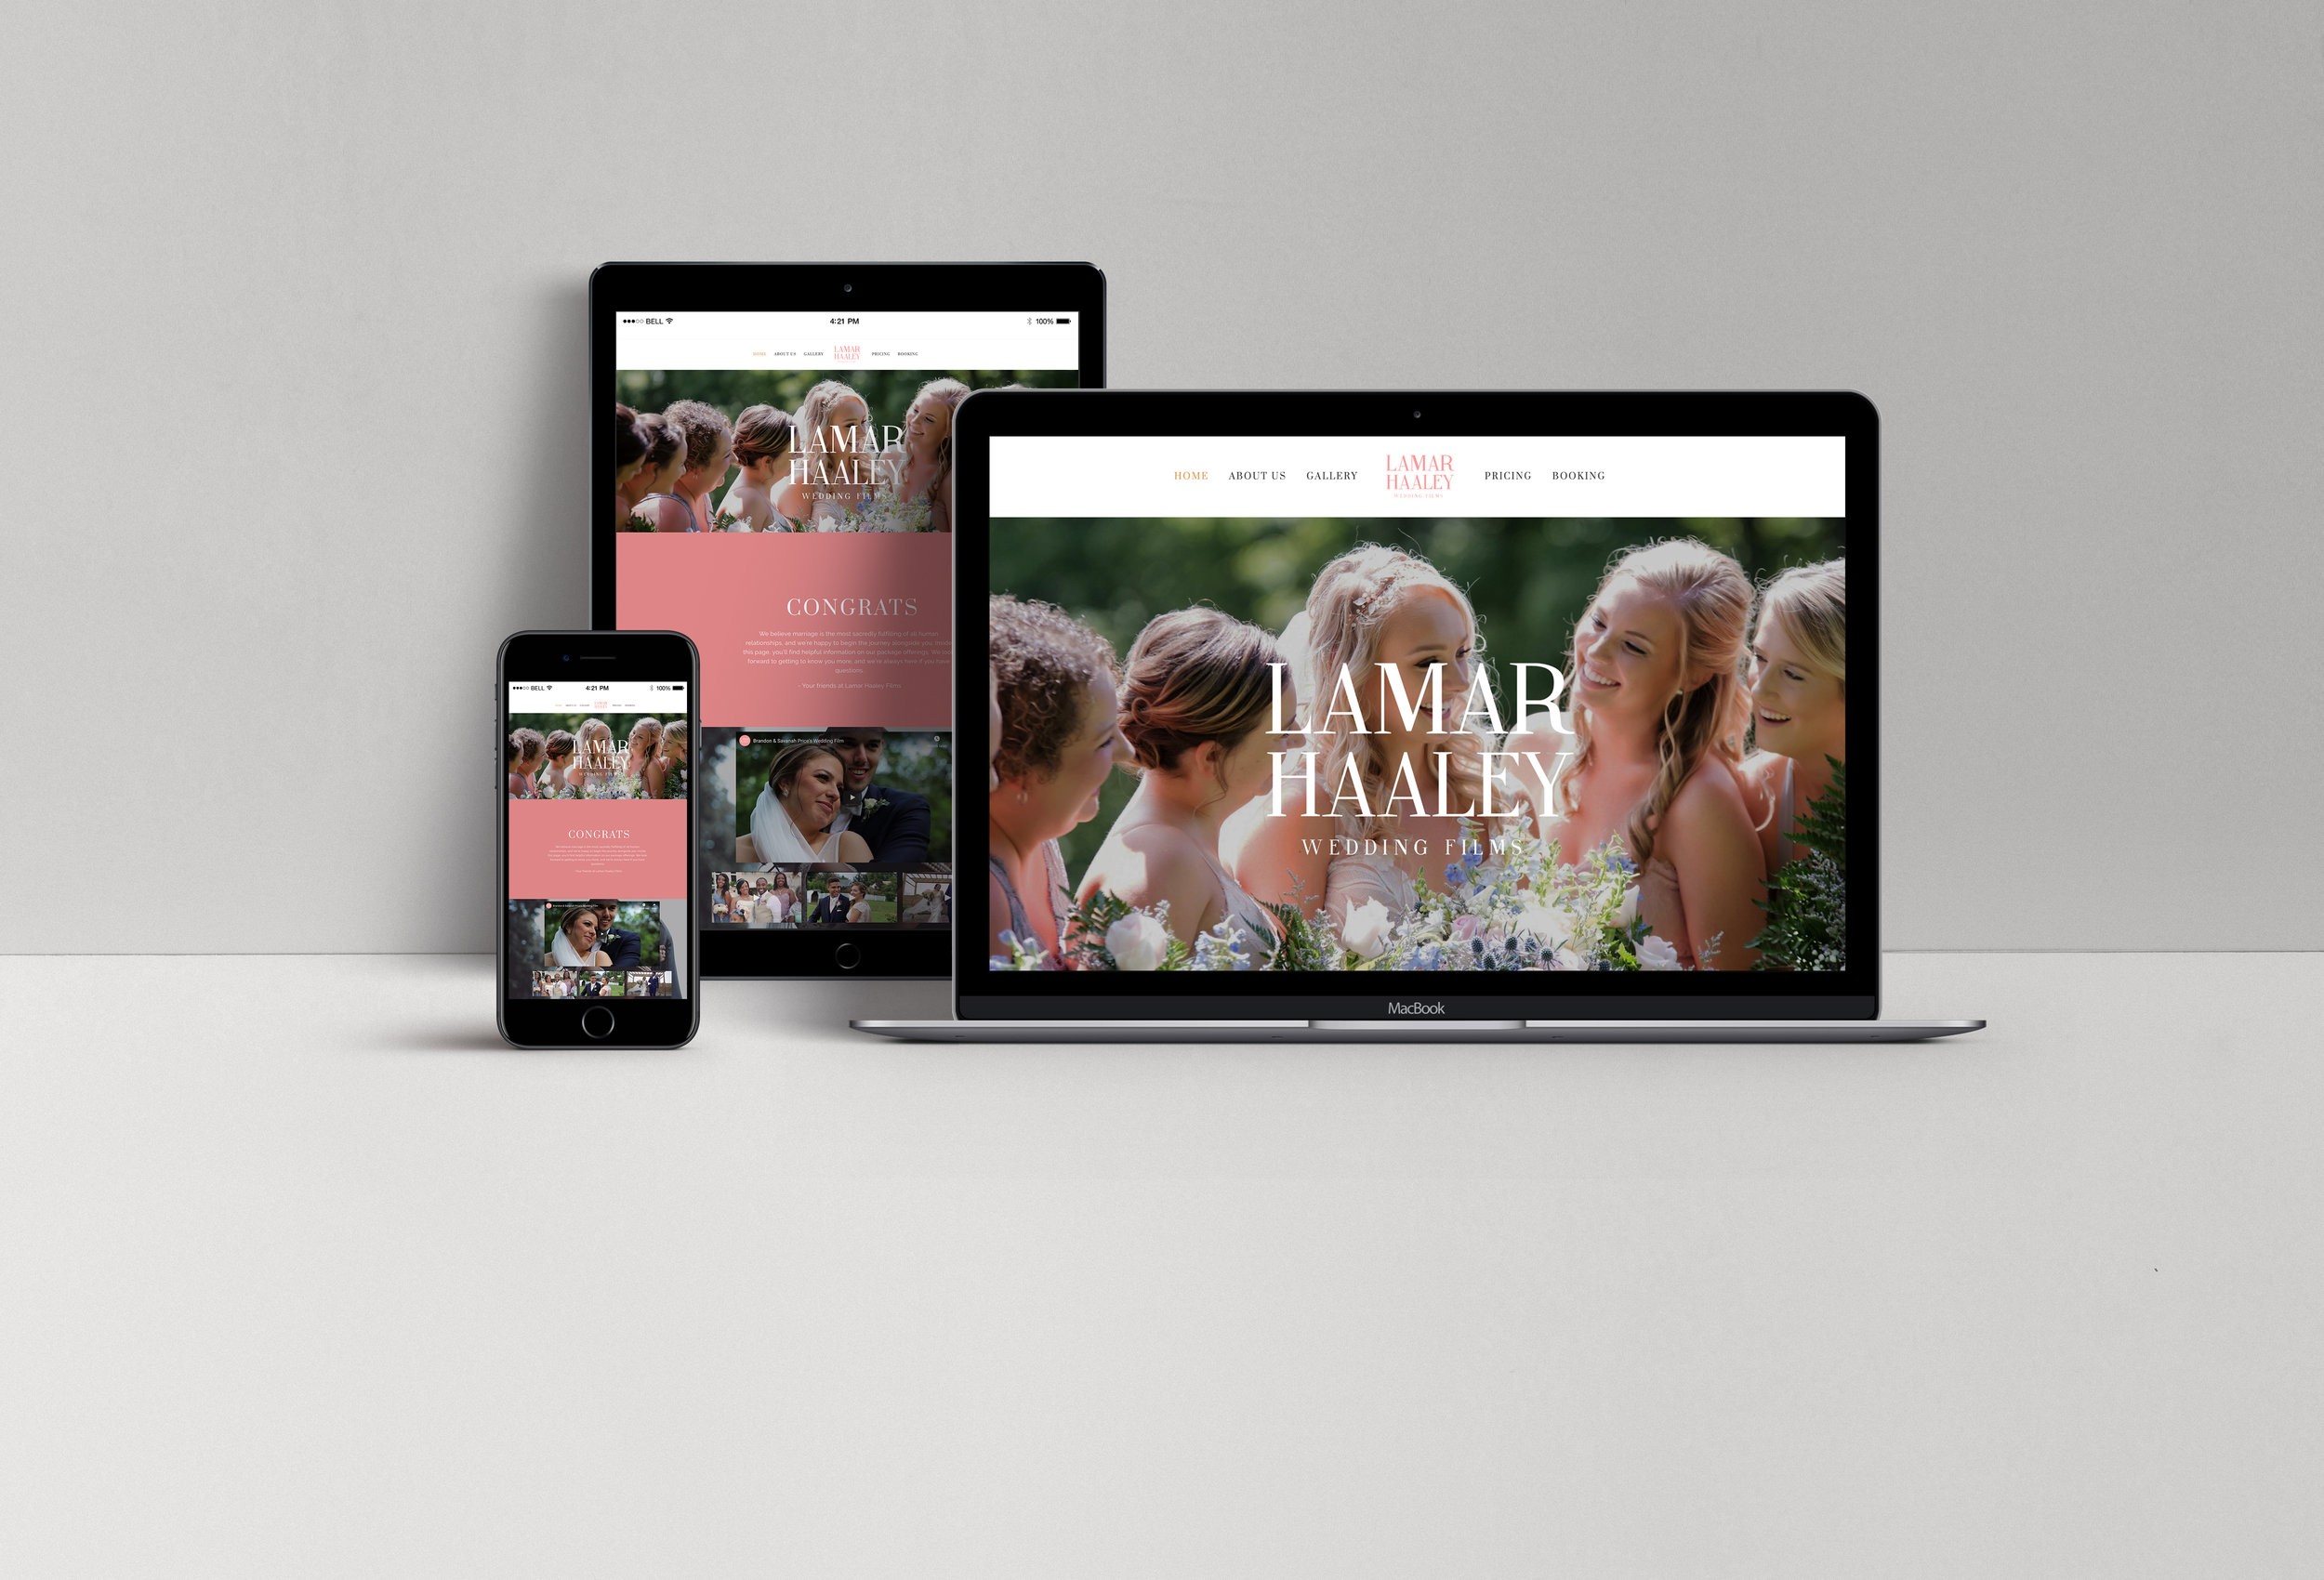 Lamar Haaley Wedding Films - Website Design Showcase.jpg